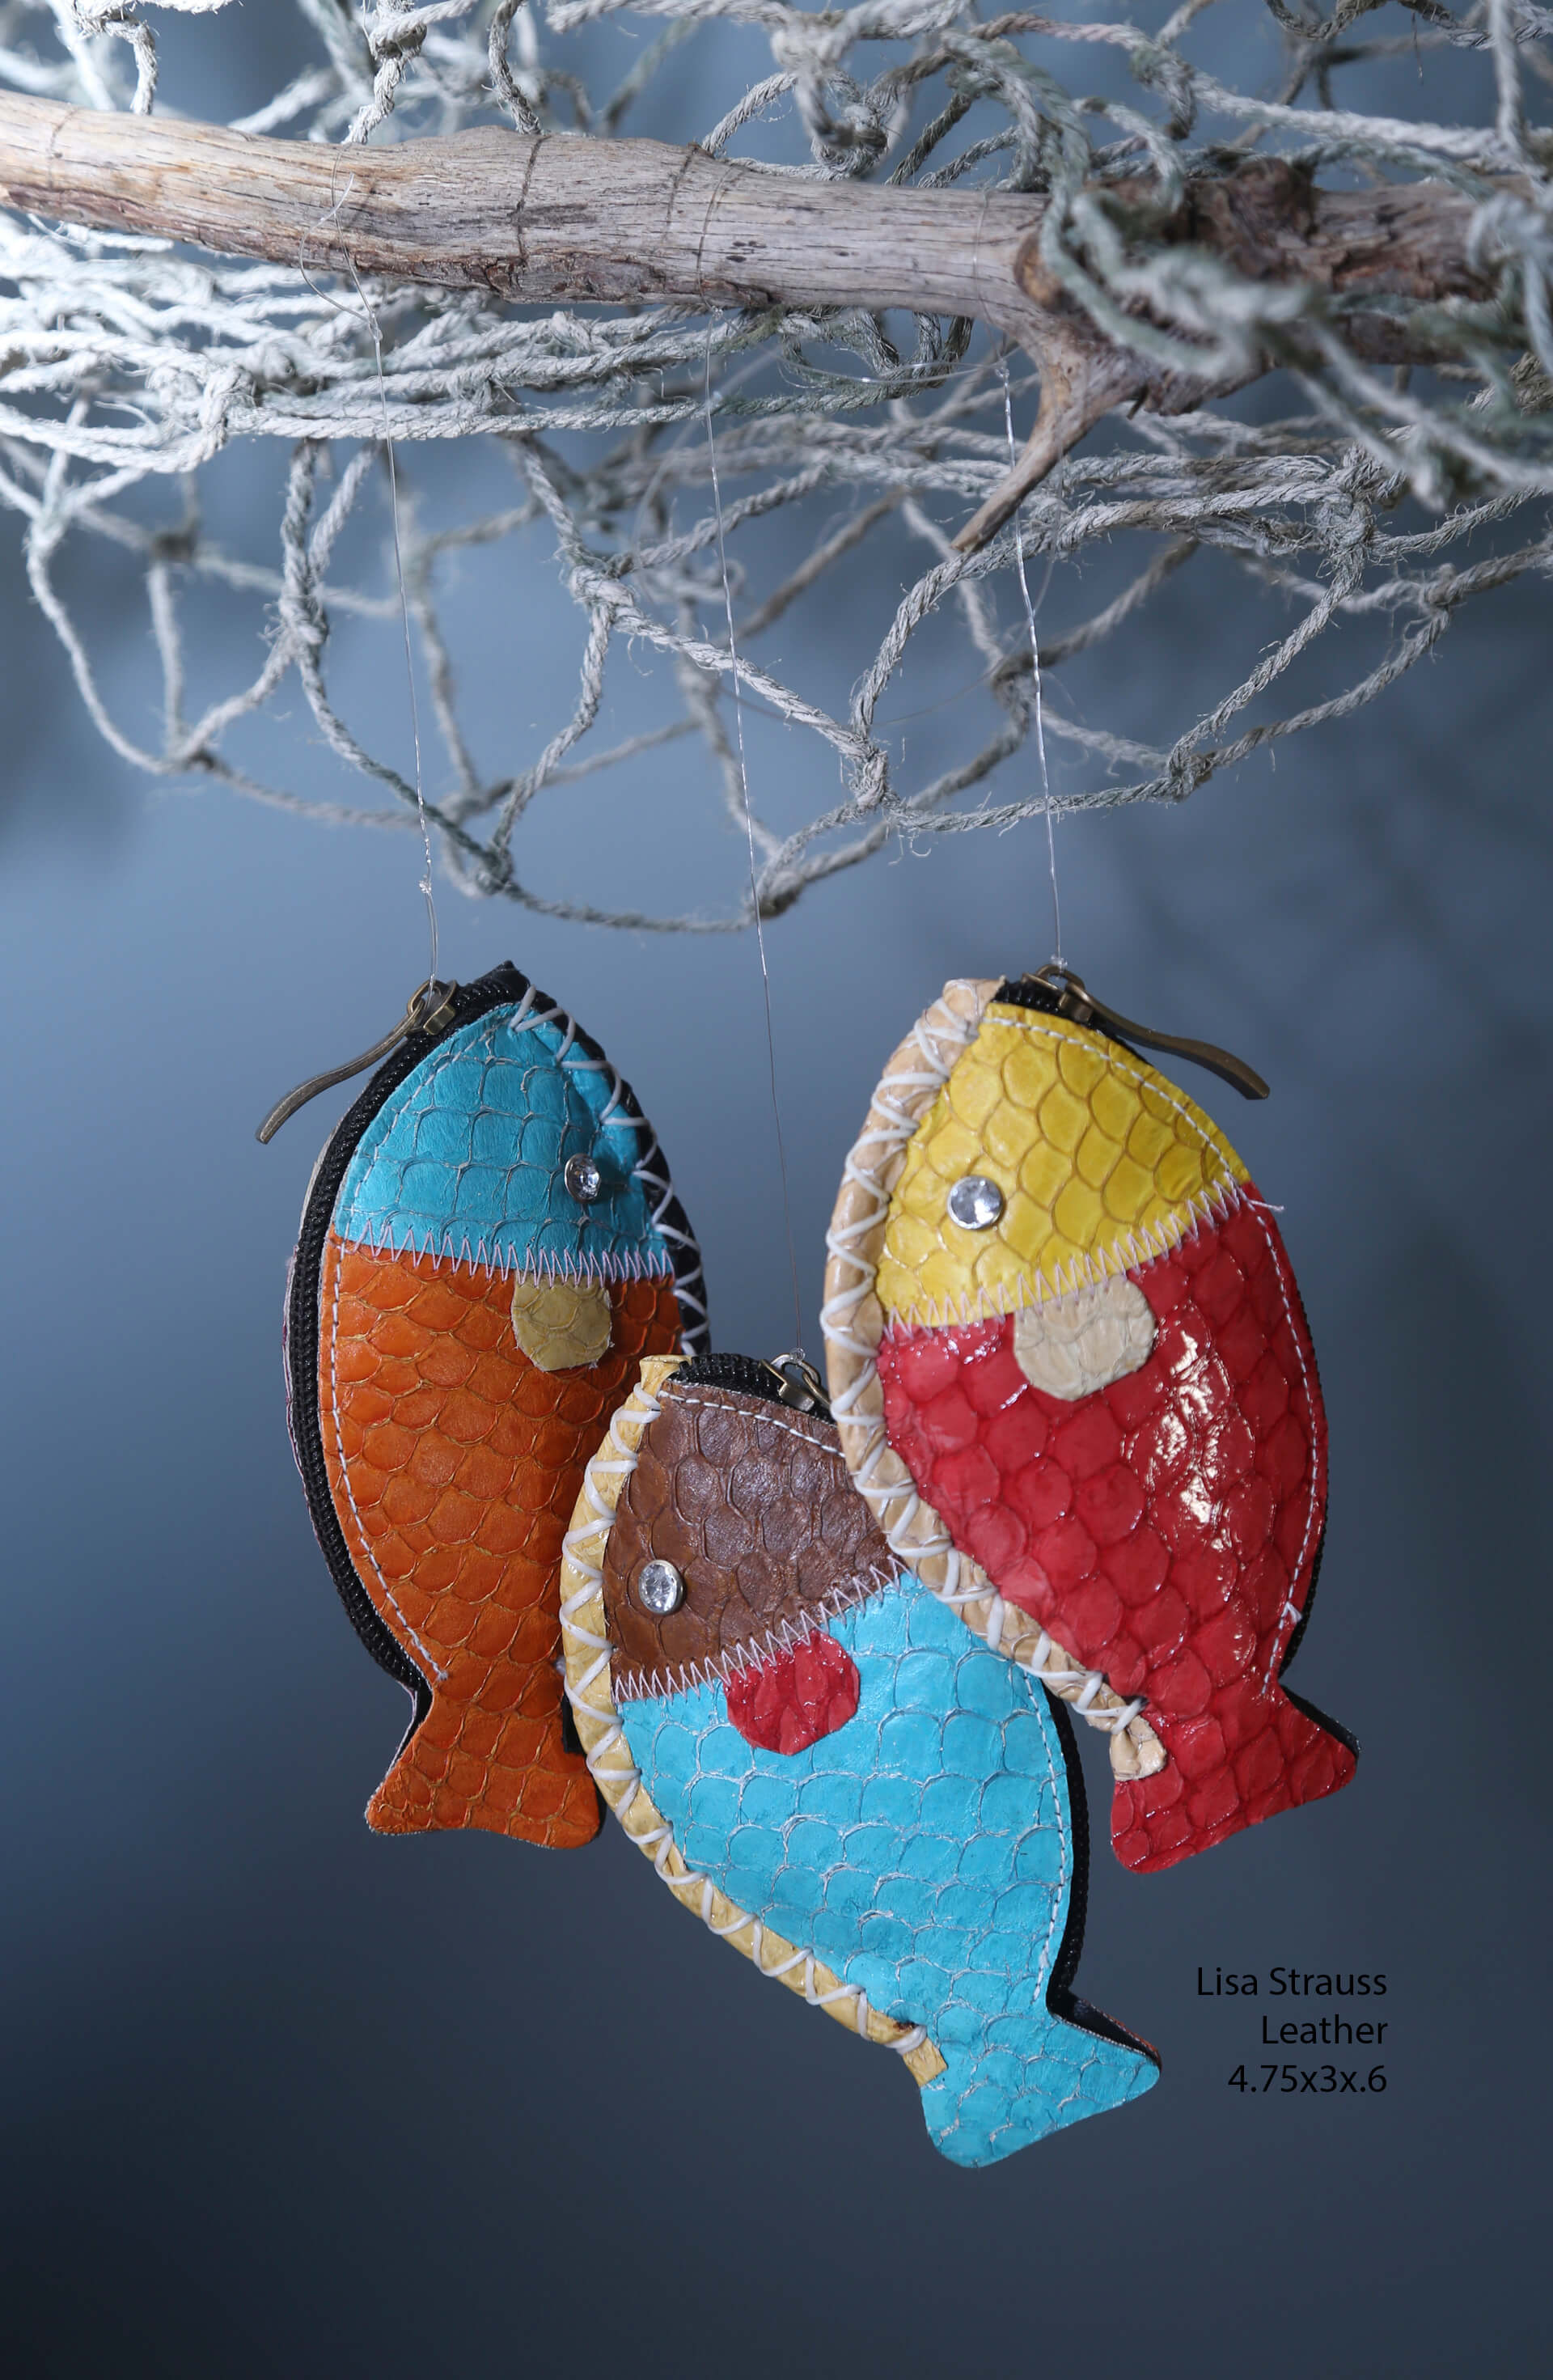 Col de Mar Sea Leather Accessories by Lisa Strauss, handcrafted leather fish coin purse